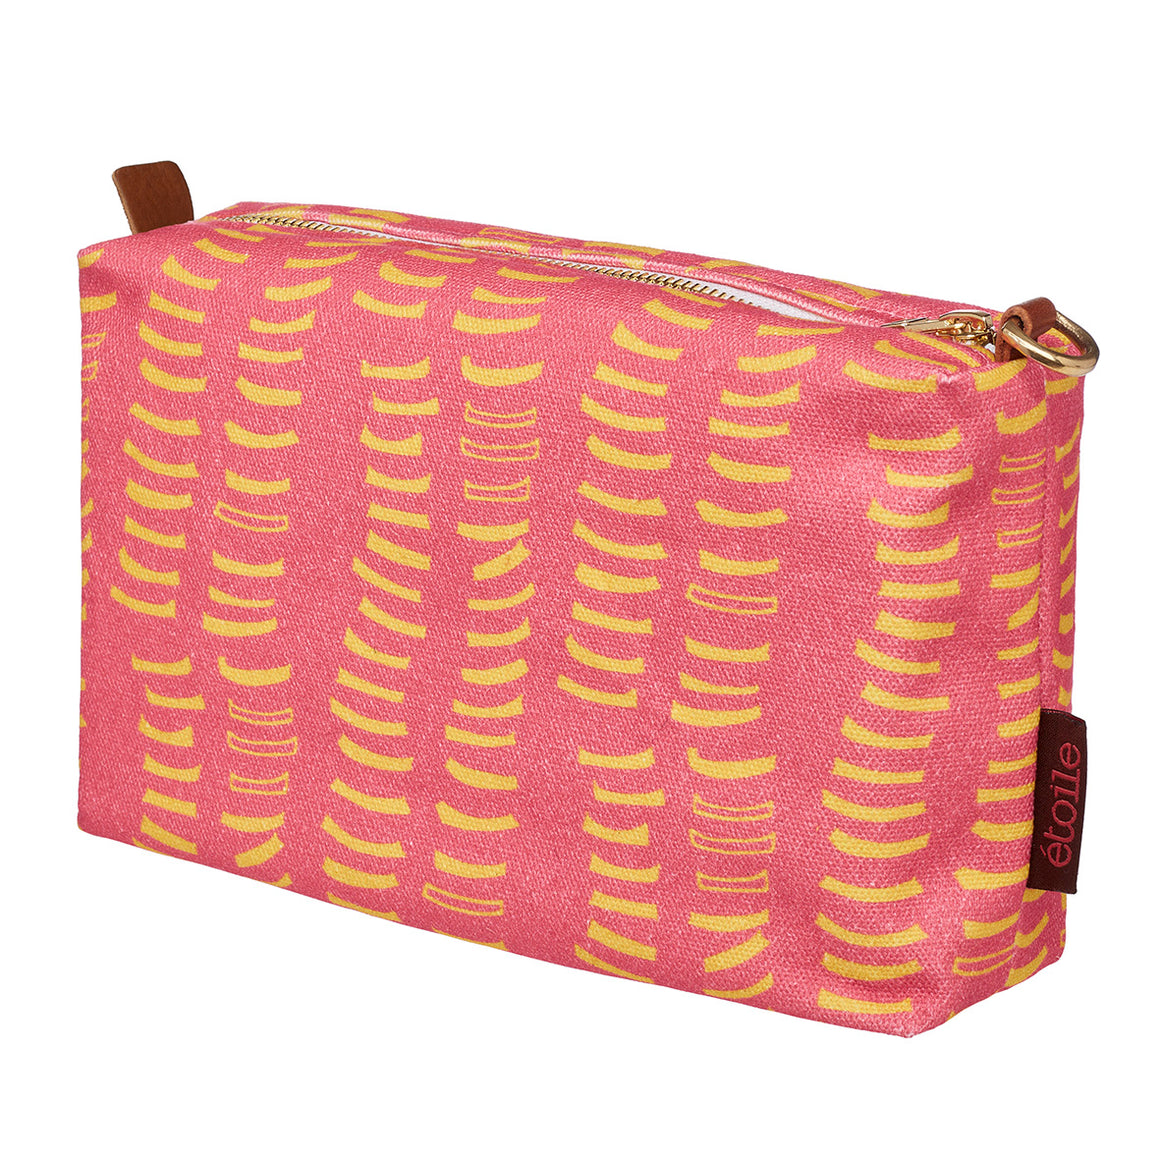 Coral-pink-yellow-adams-rib-graphic-pattern-canvas-toiletry-bag-cosmetic-water-resistant-travel-storage